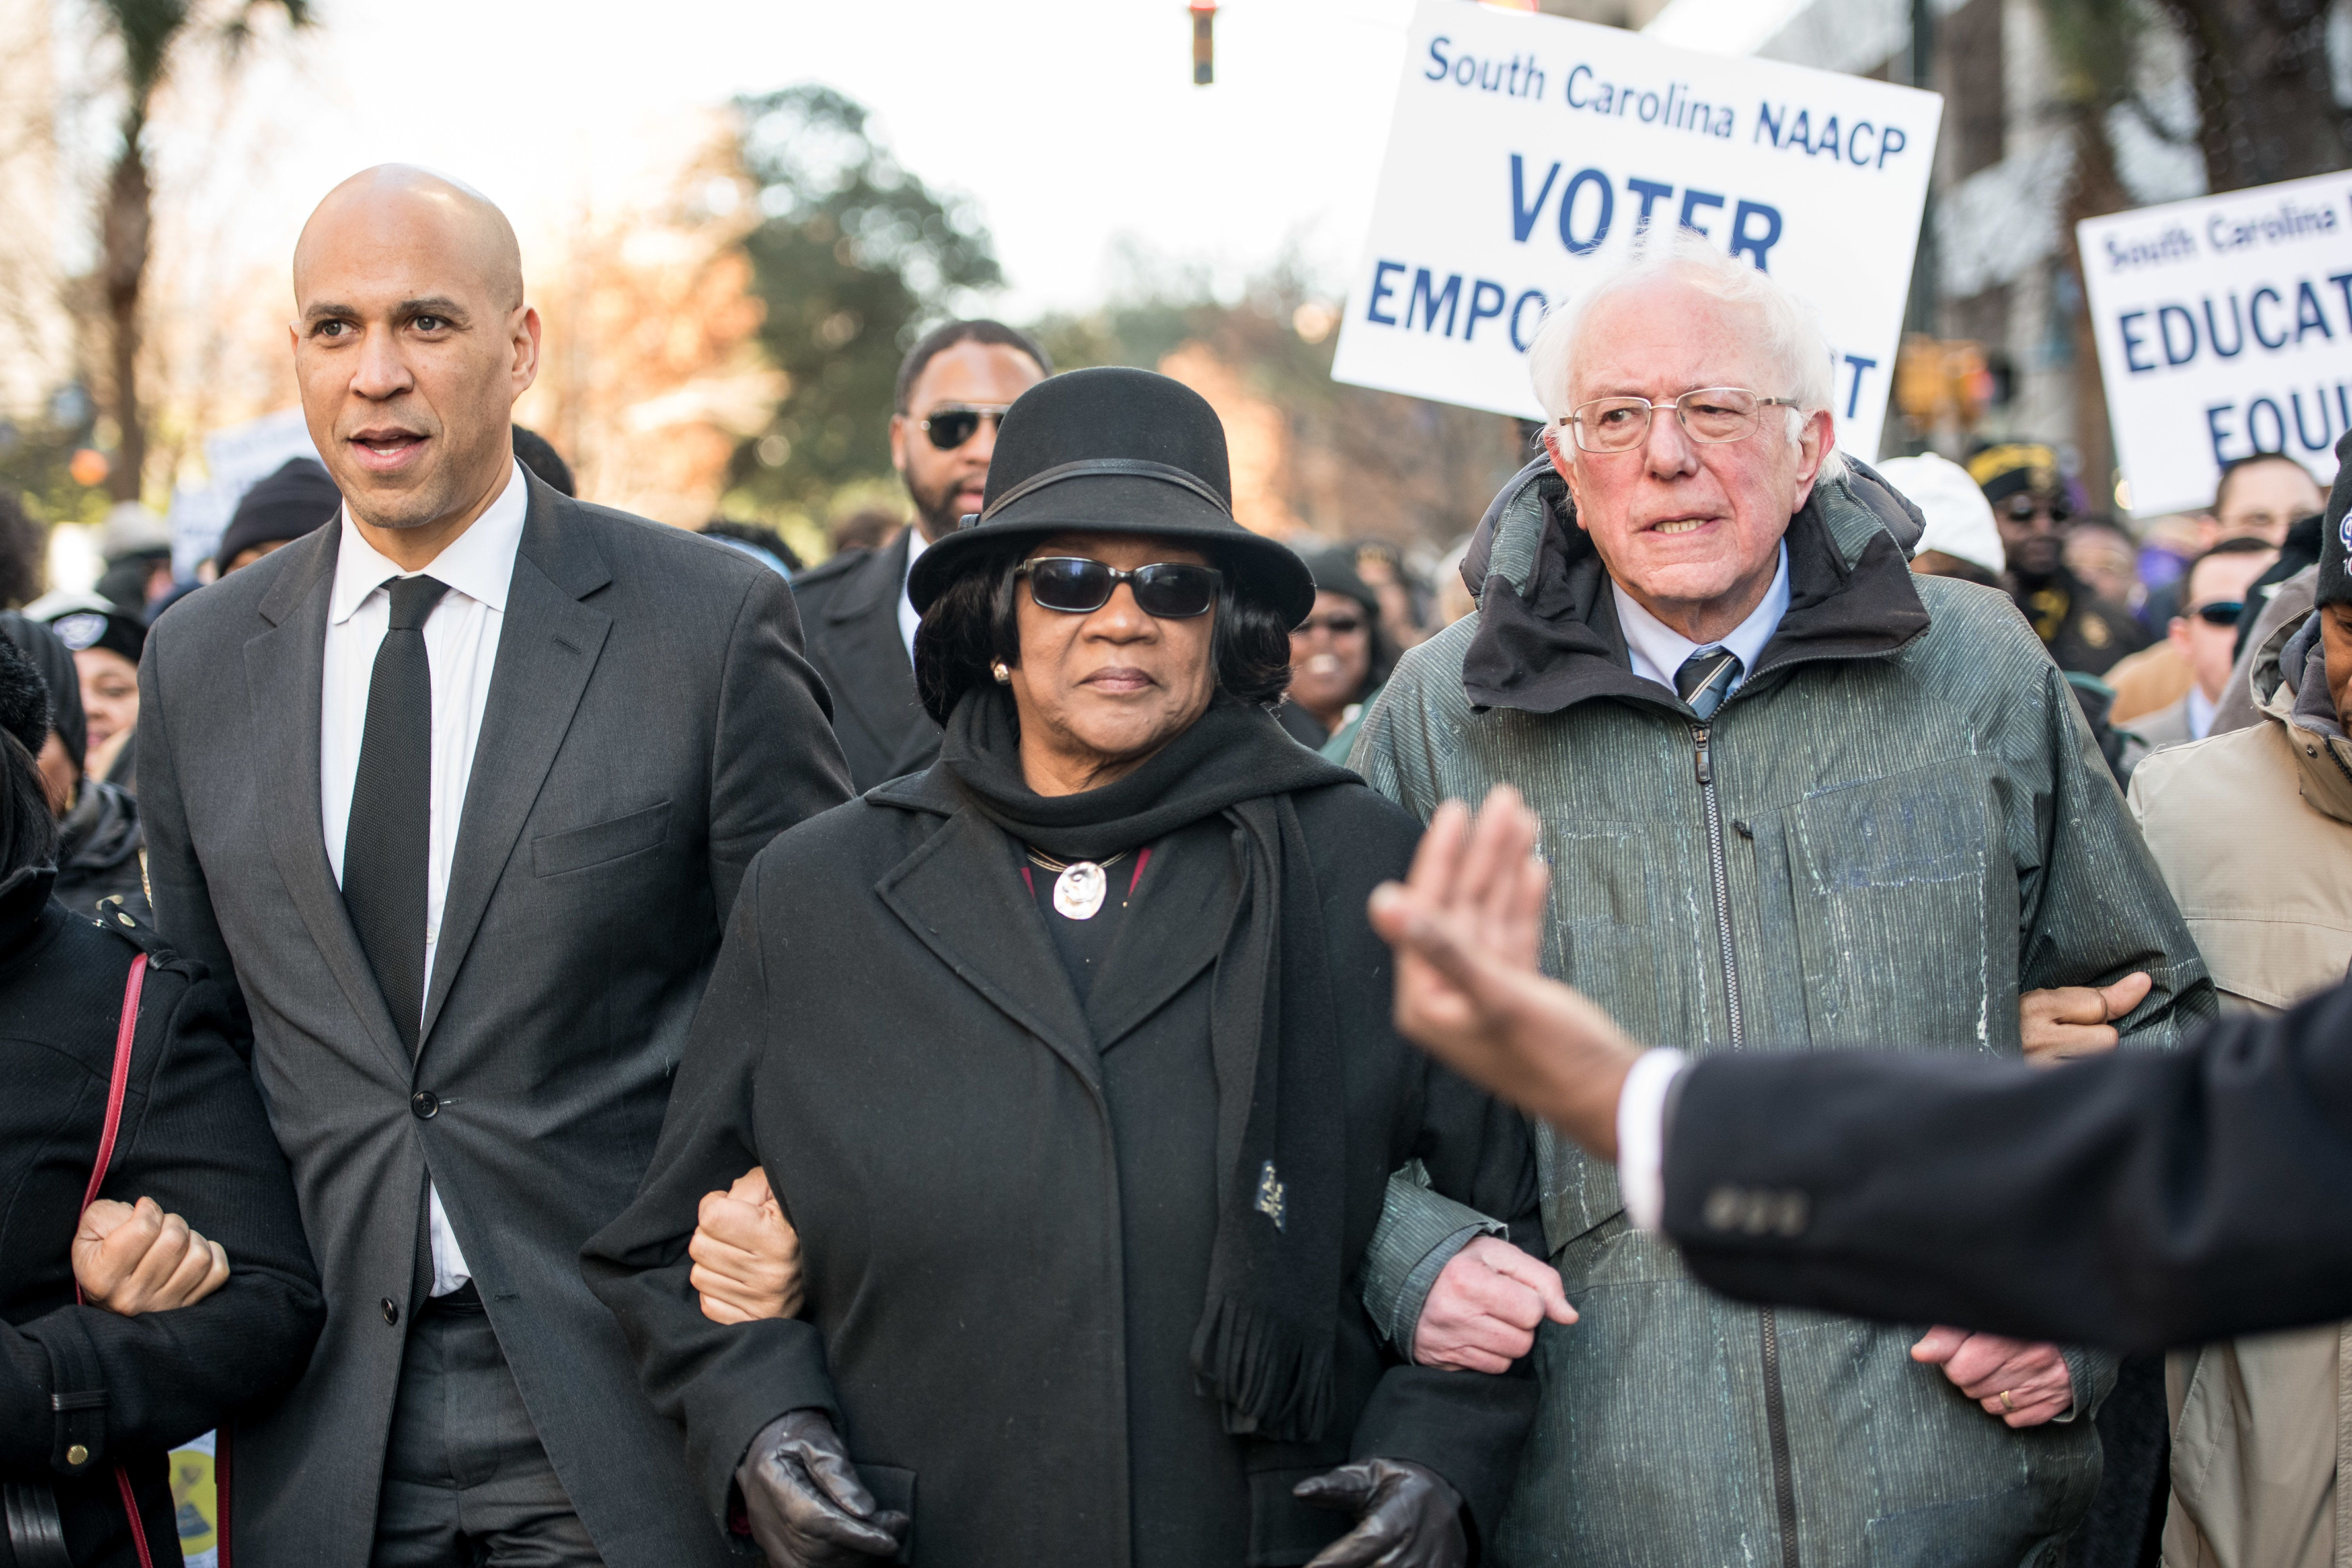 The Democratic Race For 2020 Opens With A Battle for Black Voters